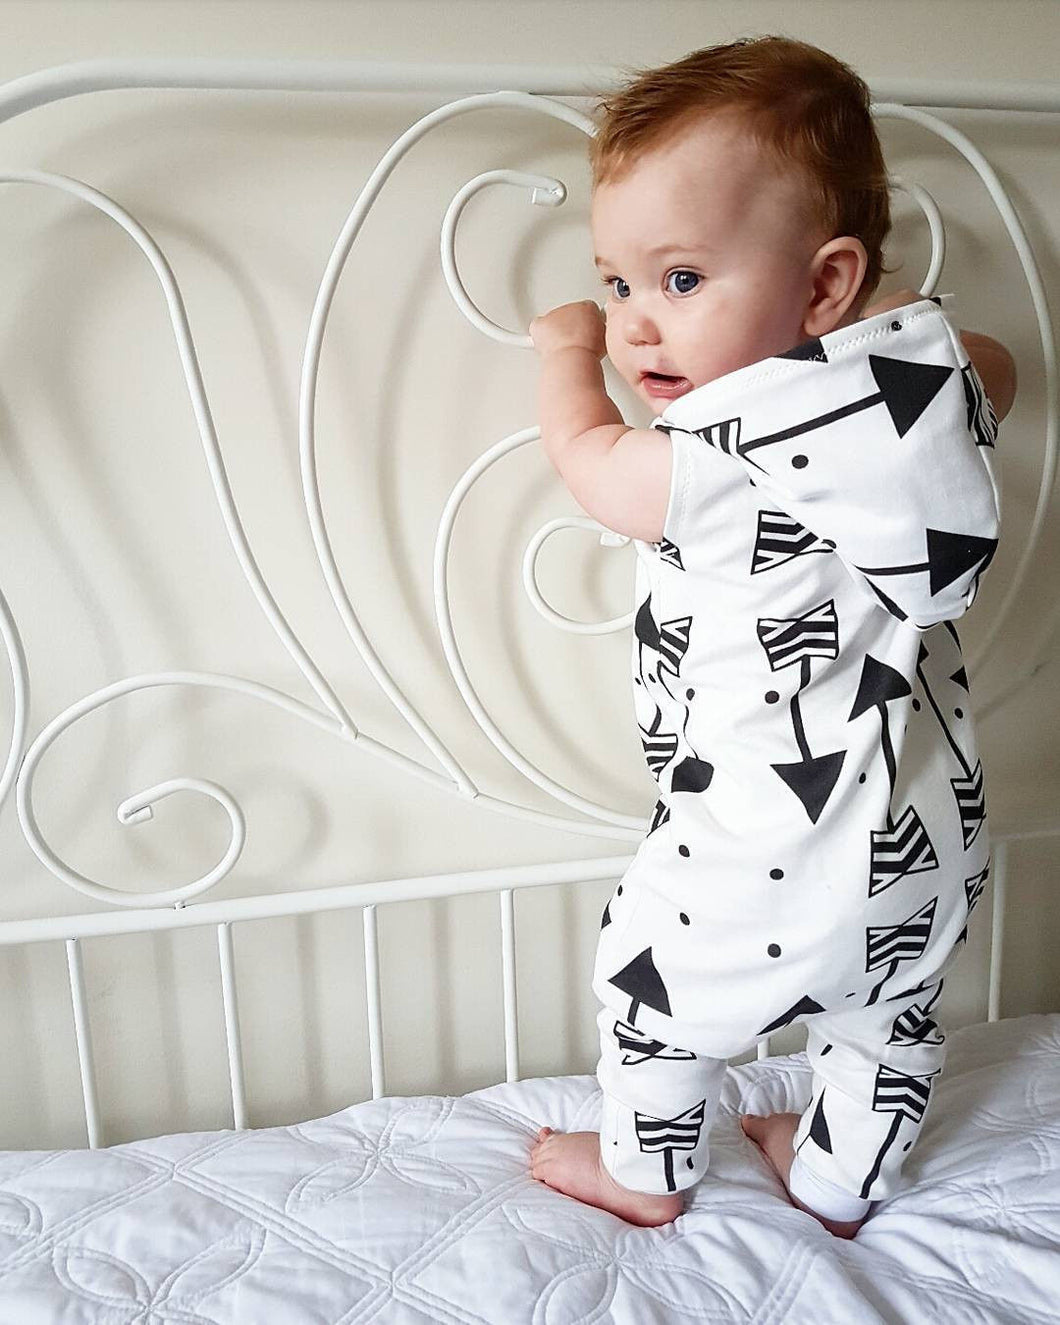 2019 new cute Children Sleeveless Arrow Clothing Infant Baby Boy Kid Hooded Sleeveles Romper Jumpsuit Outfits Clothes - boo.bootik